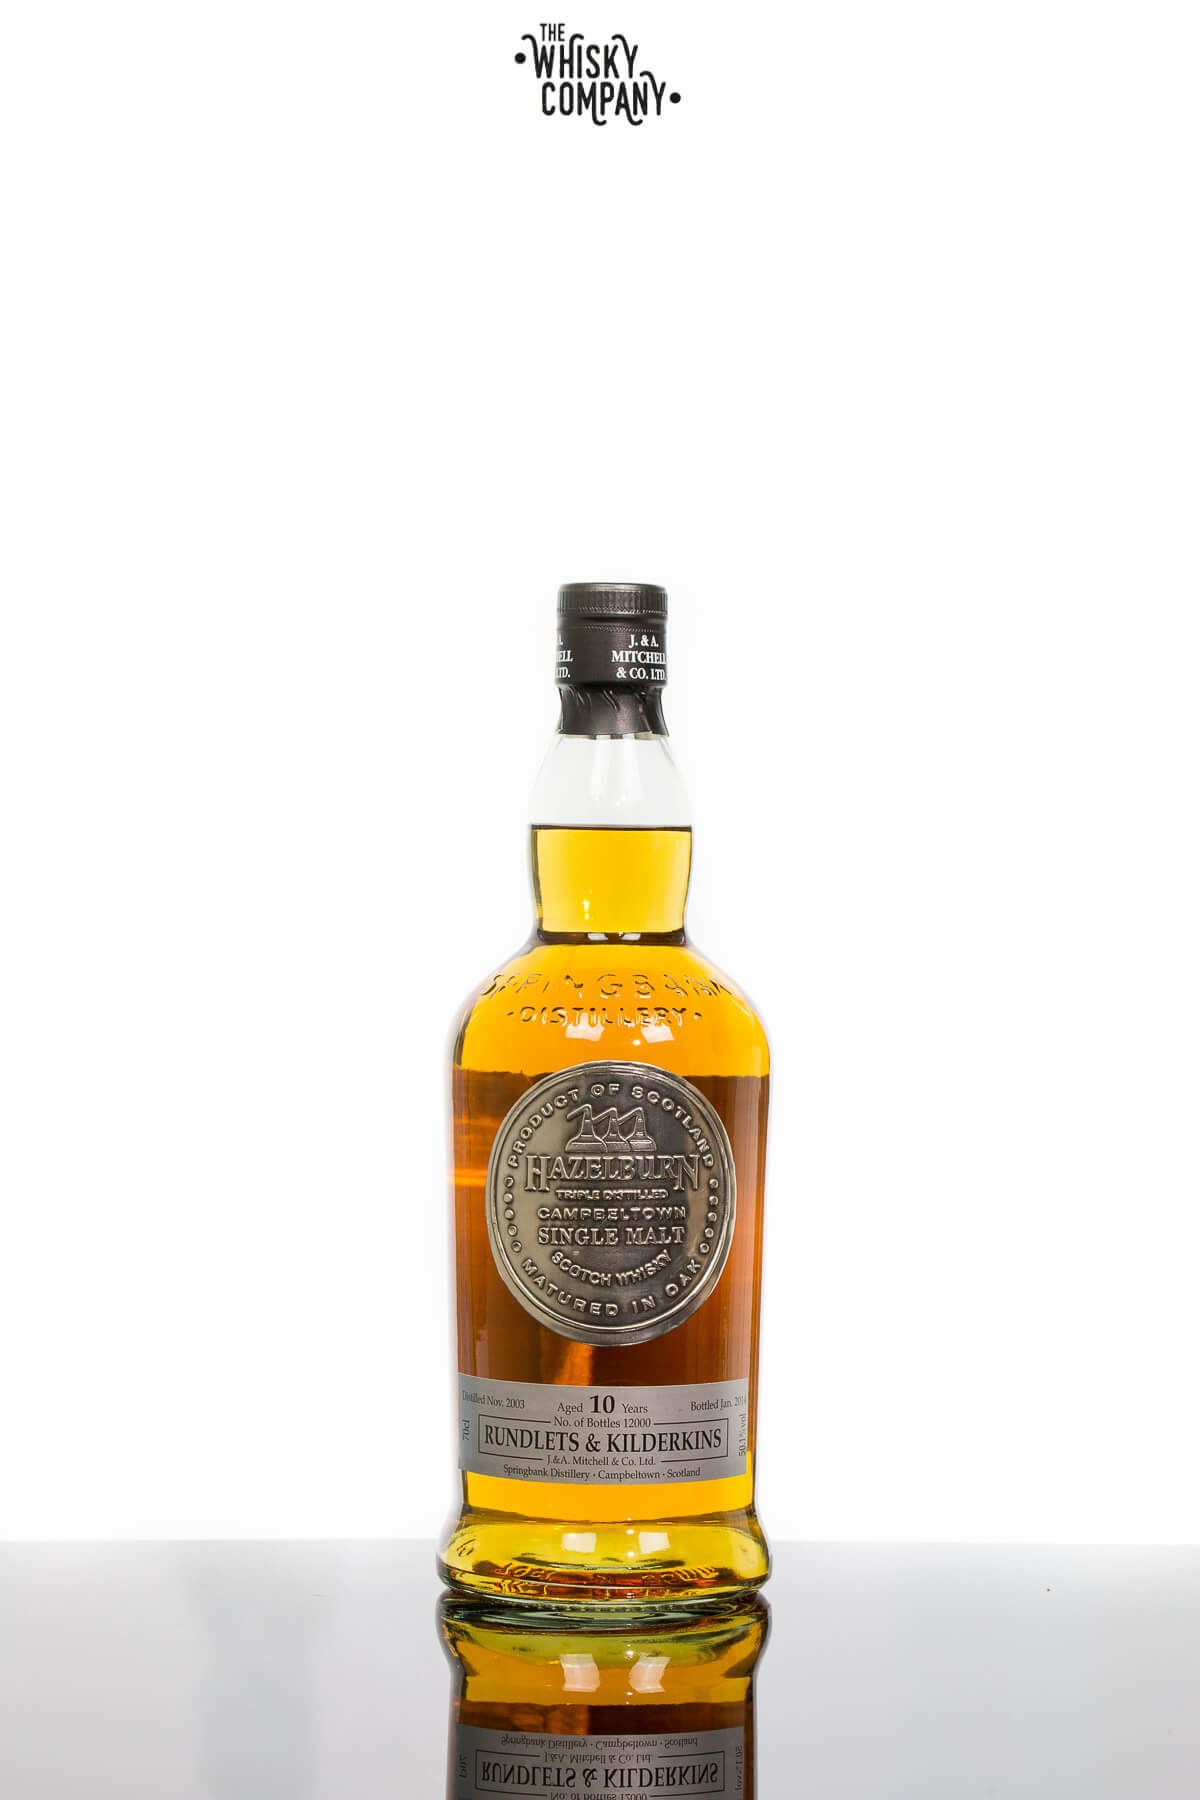 Hazelburn Aged 10 Years Rundlets & Kilderkins Campbeltown Single Malt Scotch Whisky (700ml)